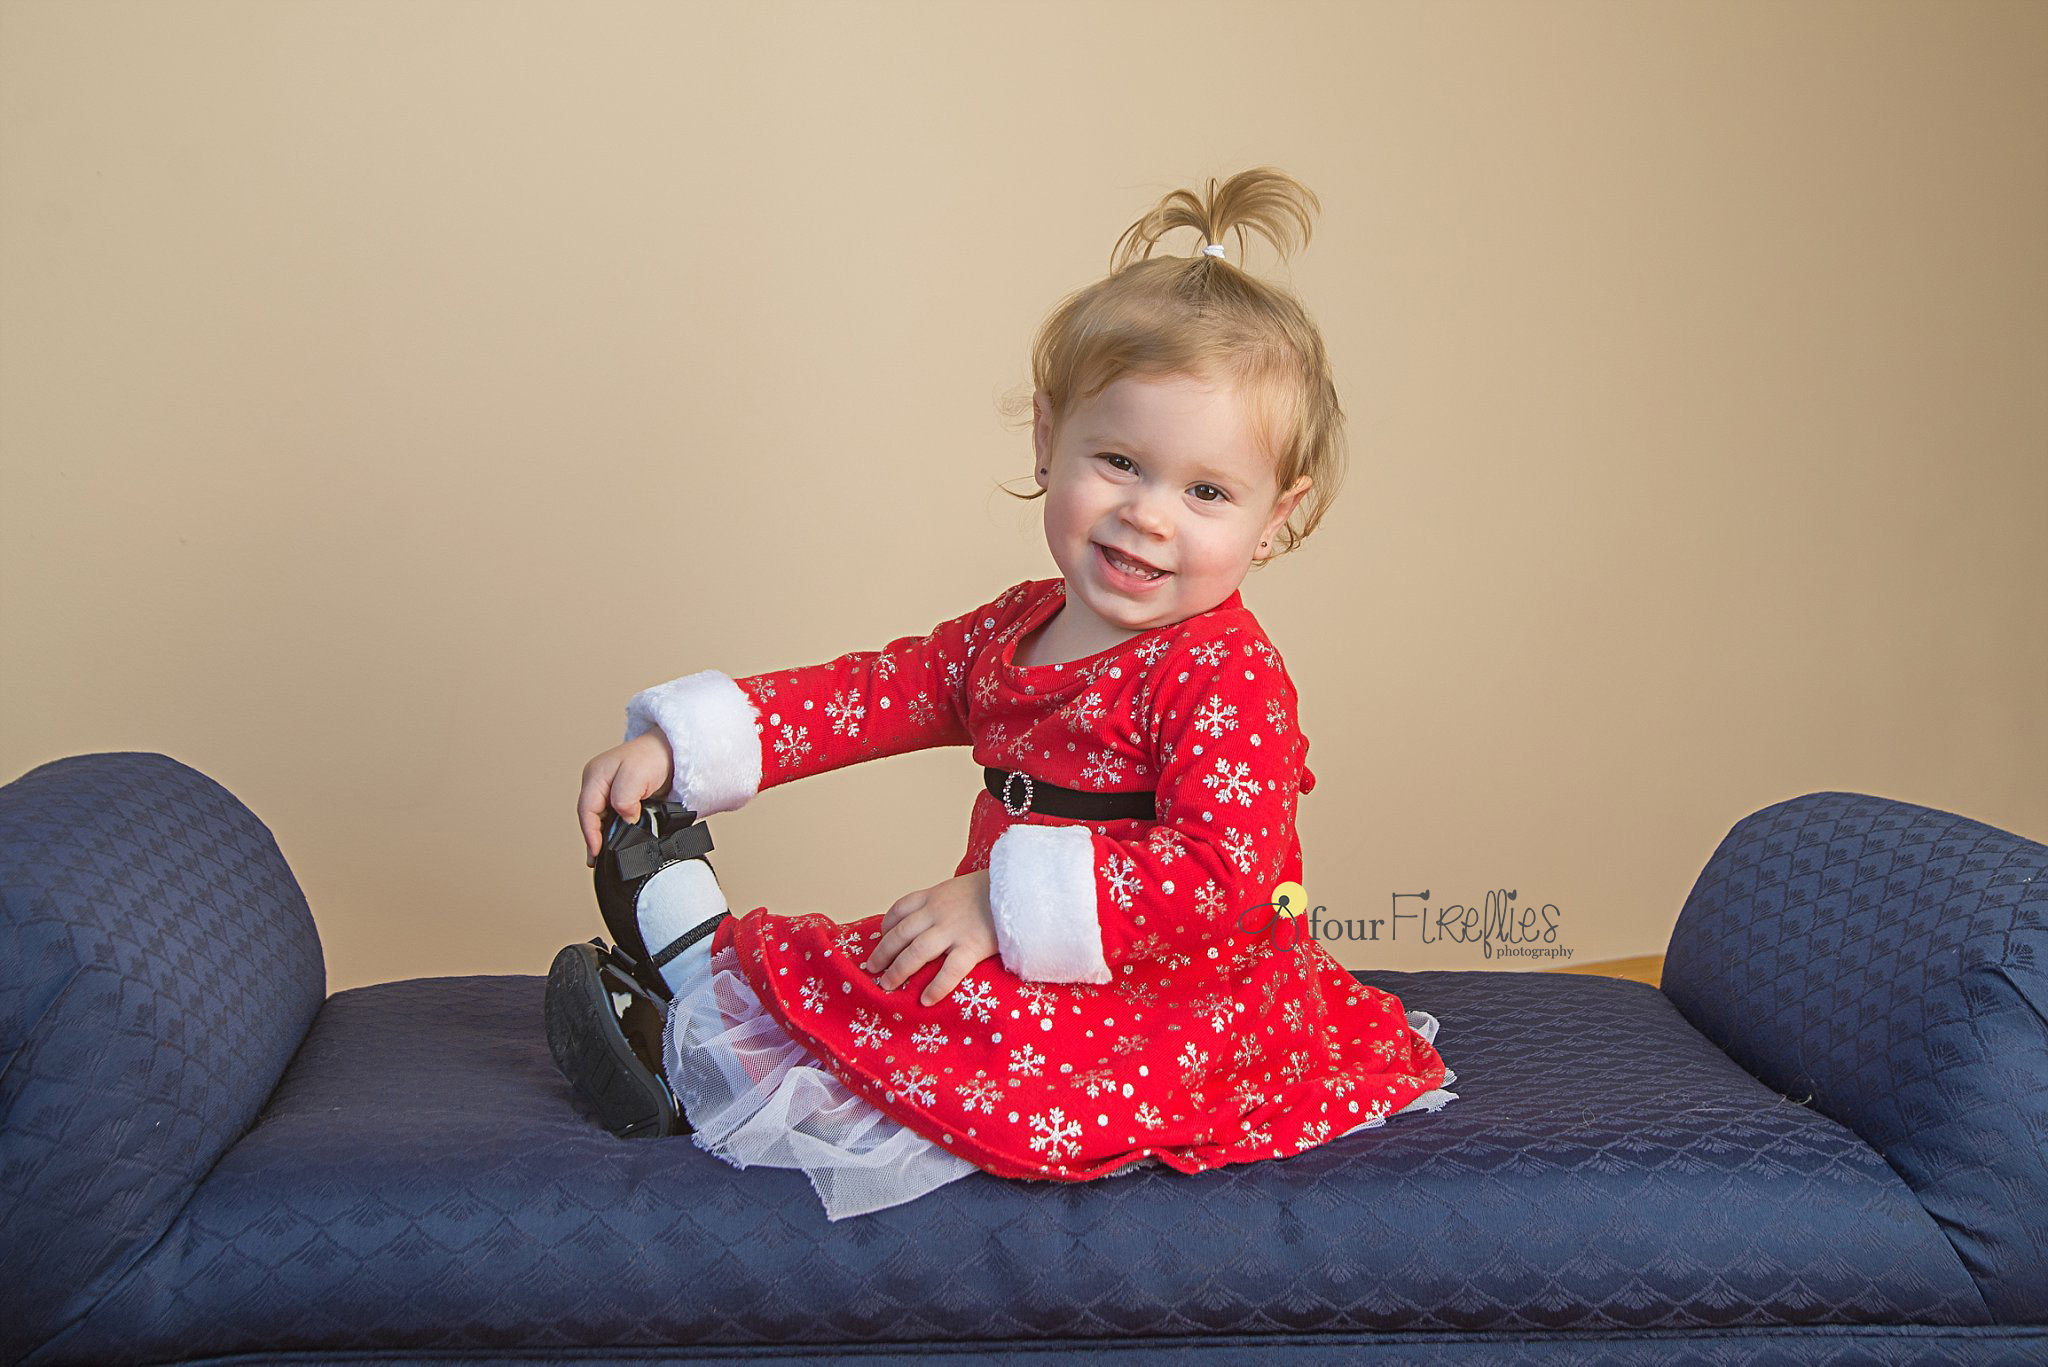 st-louis-photography-studio-girl-in-christmas-dress-holding-feet-on-blue-couch.jpg